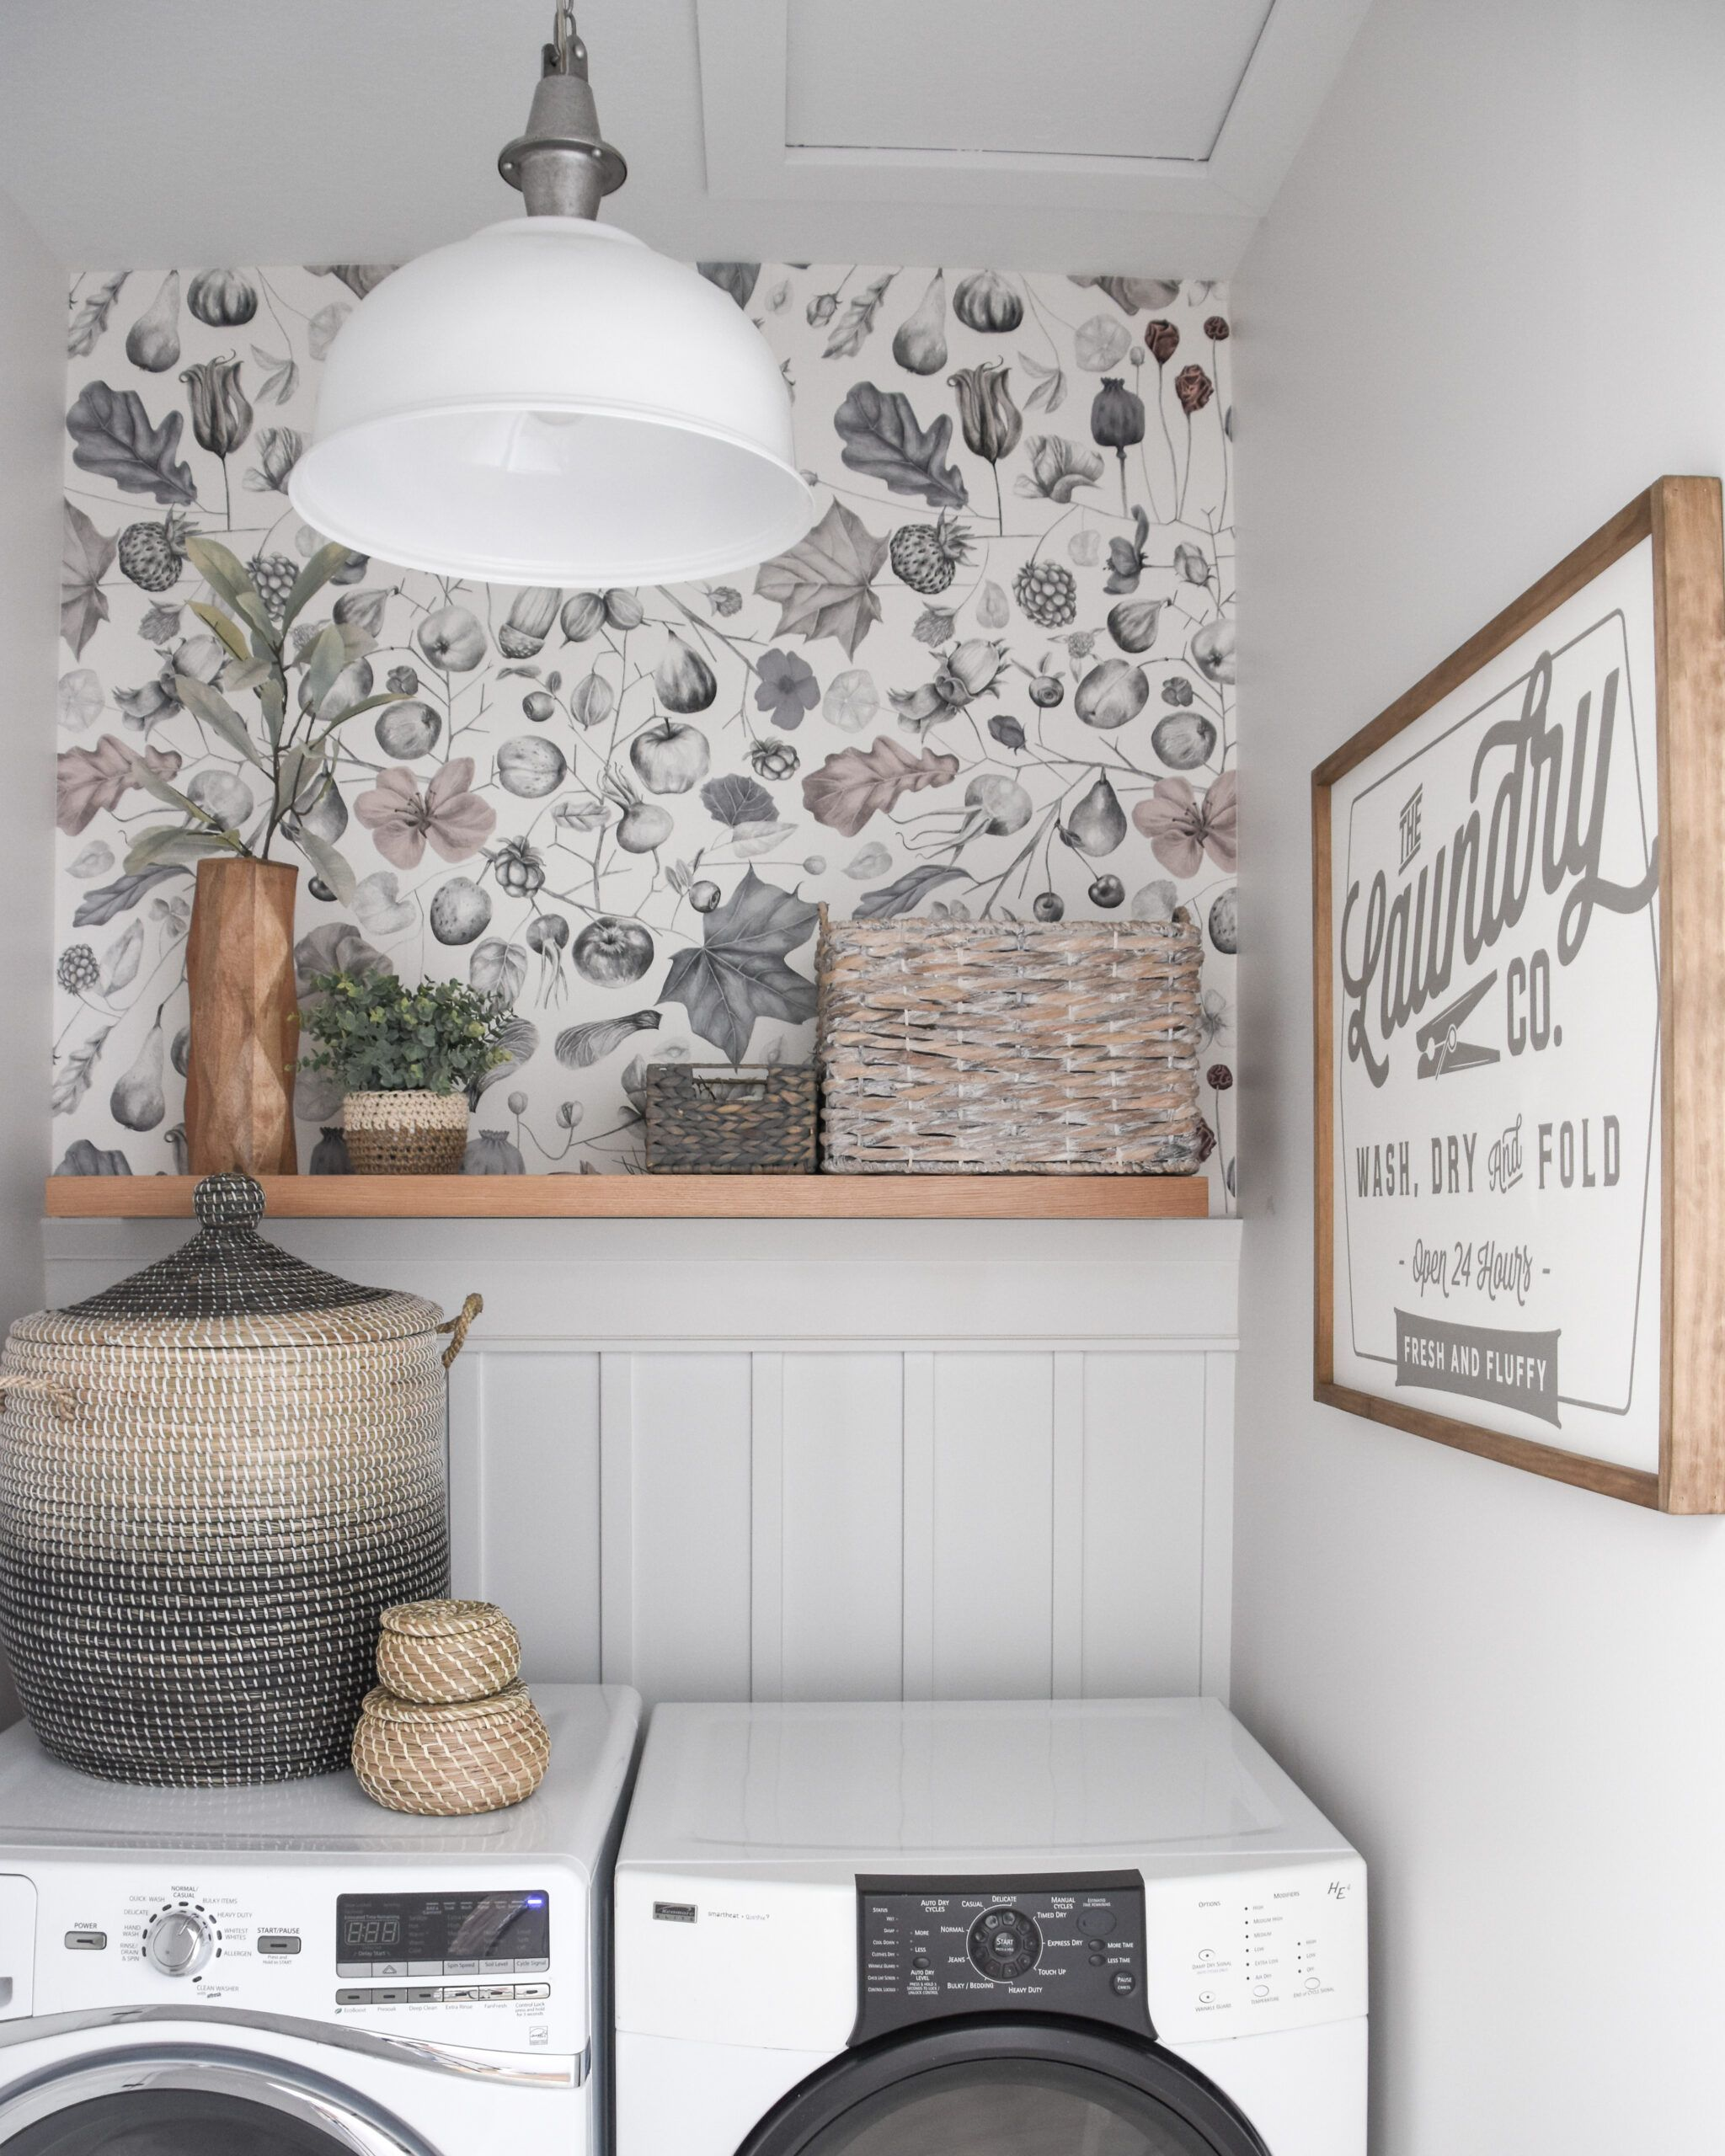 Small Laundry Room Makeover Start At Home Decor Small Laundry Room Makeover Laundry Room Wallpaper Laundry Room Makeover